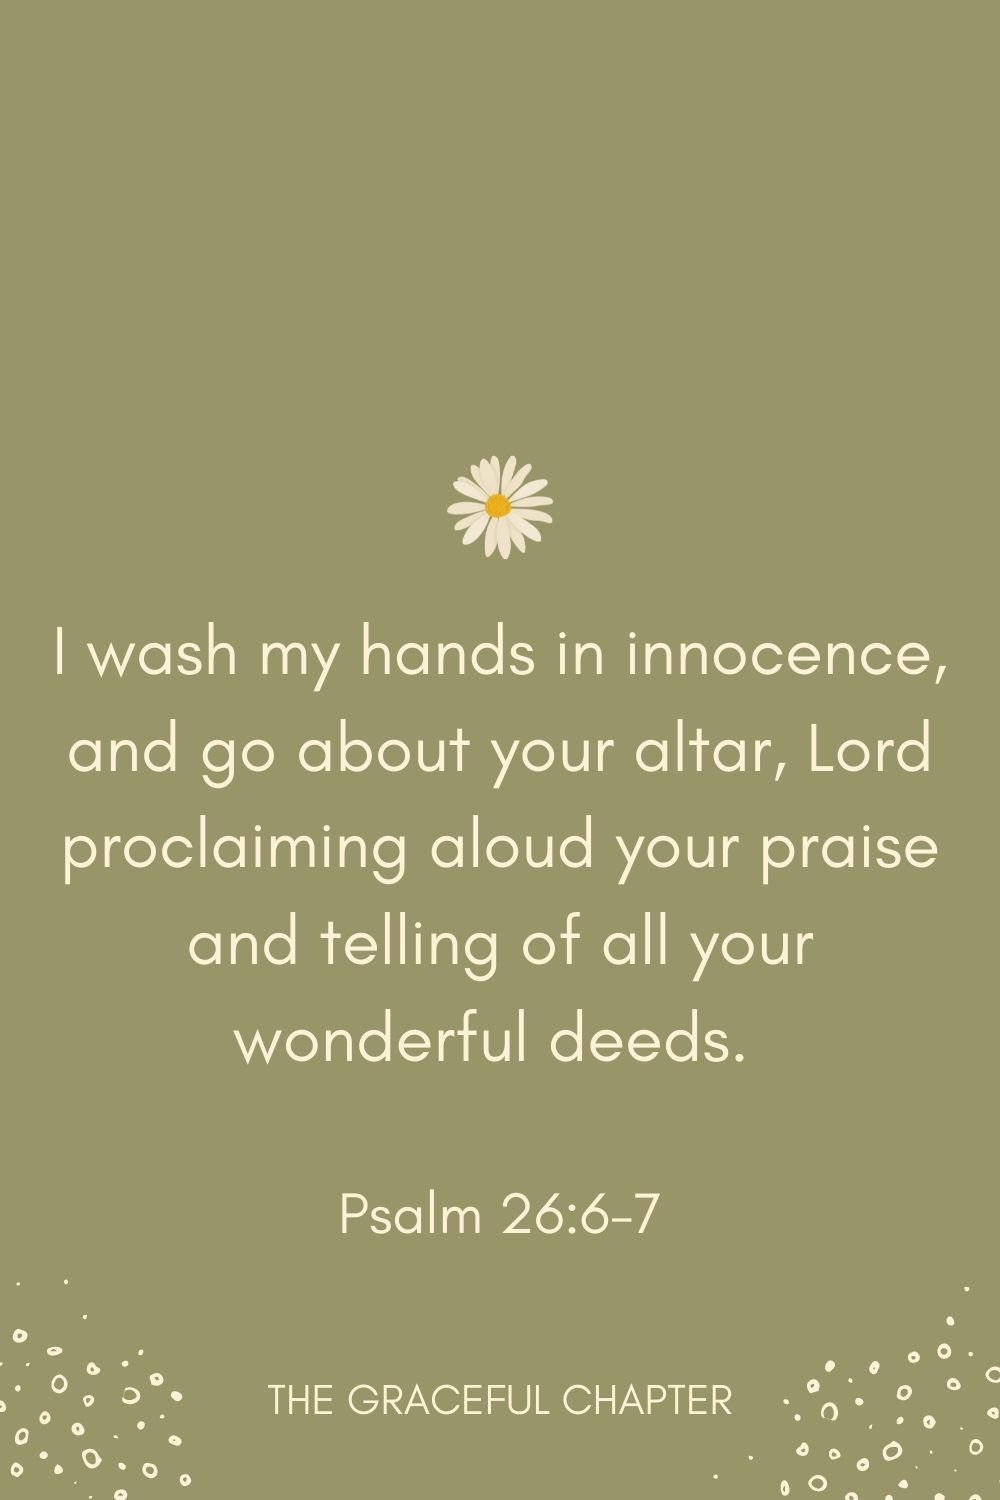 I wash my hands in innocence, and go about your altar, Lord proclaiming aloud your praise and telling of all your wonderful deeds.  Psalm 26:6-7